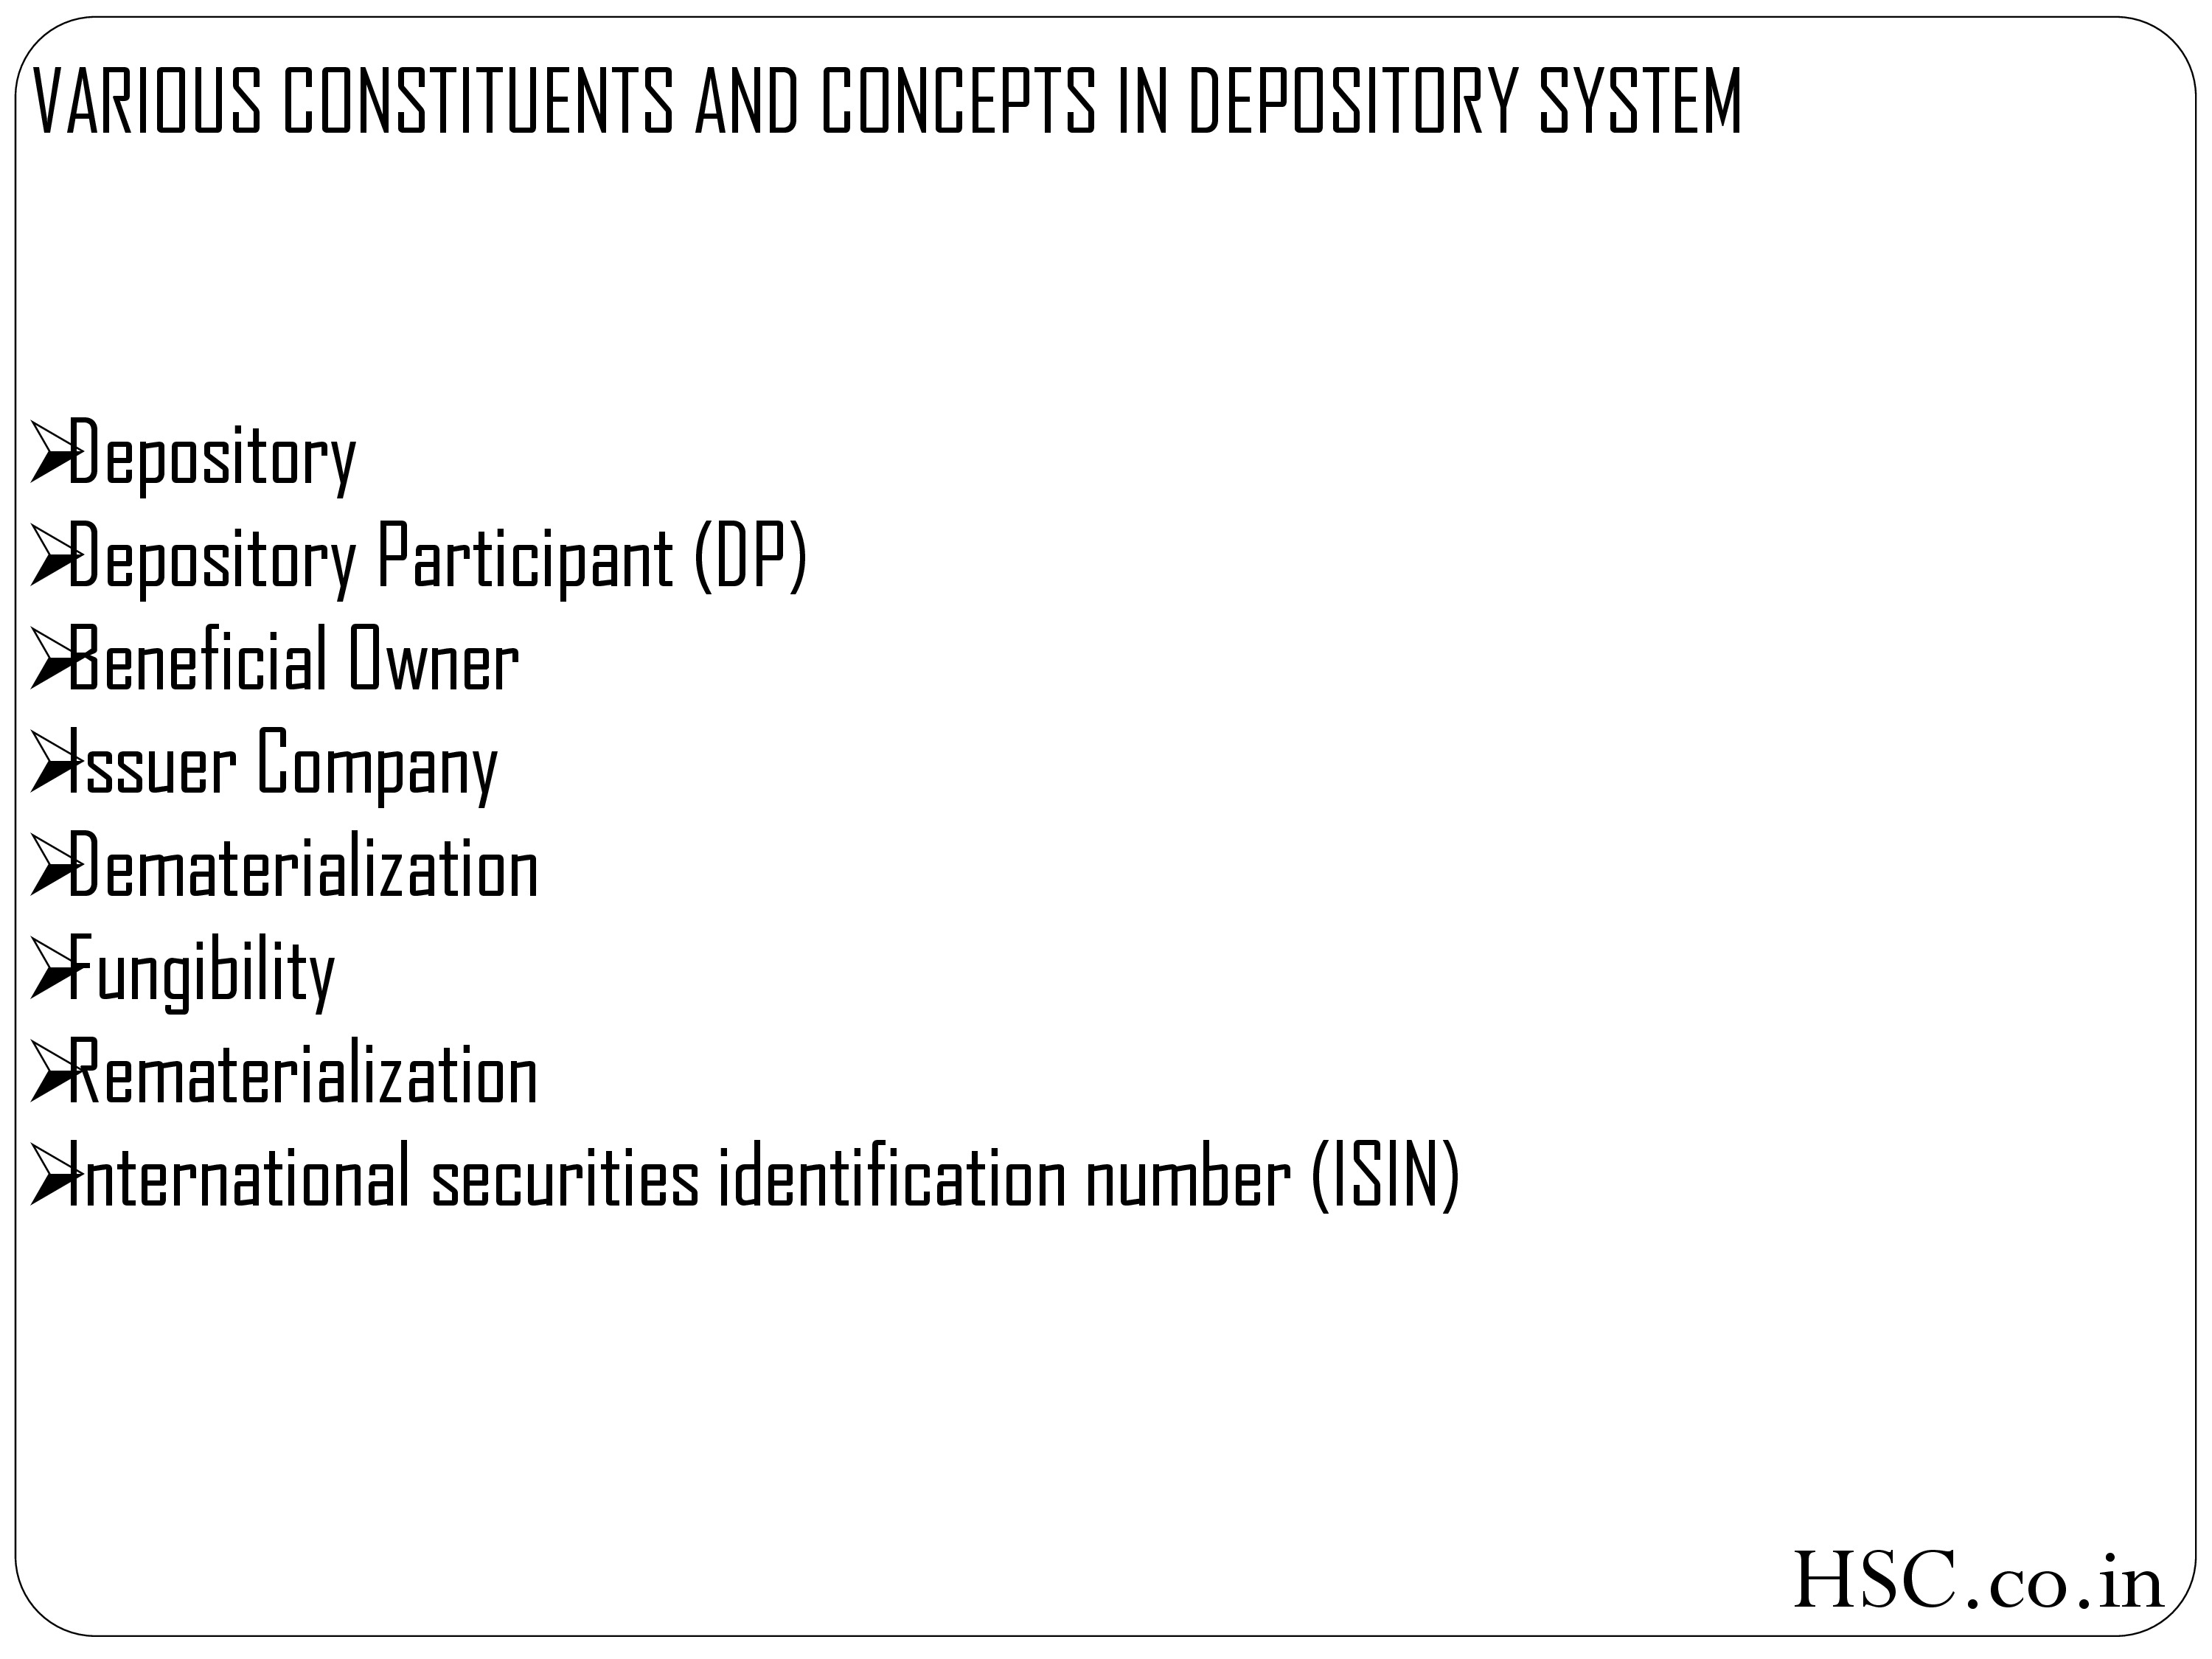 various constituents and concepts-1